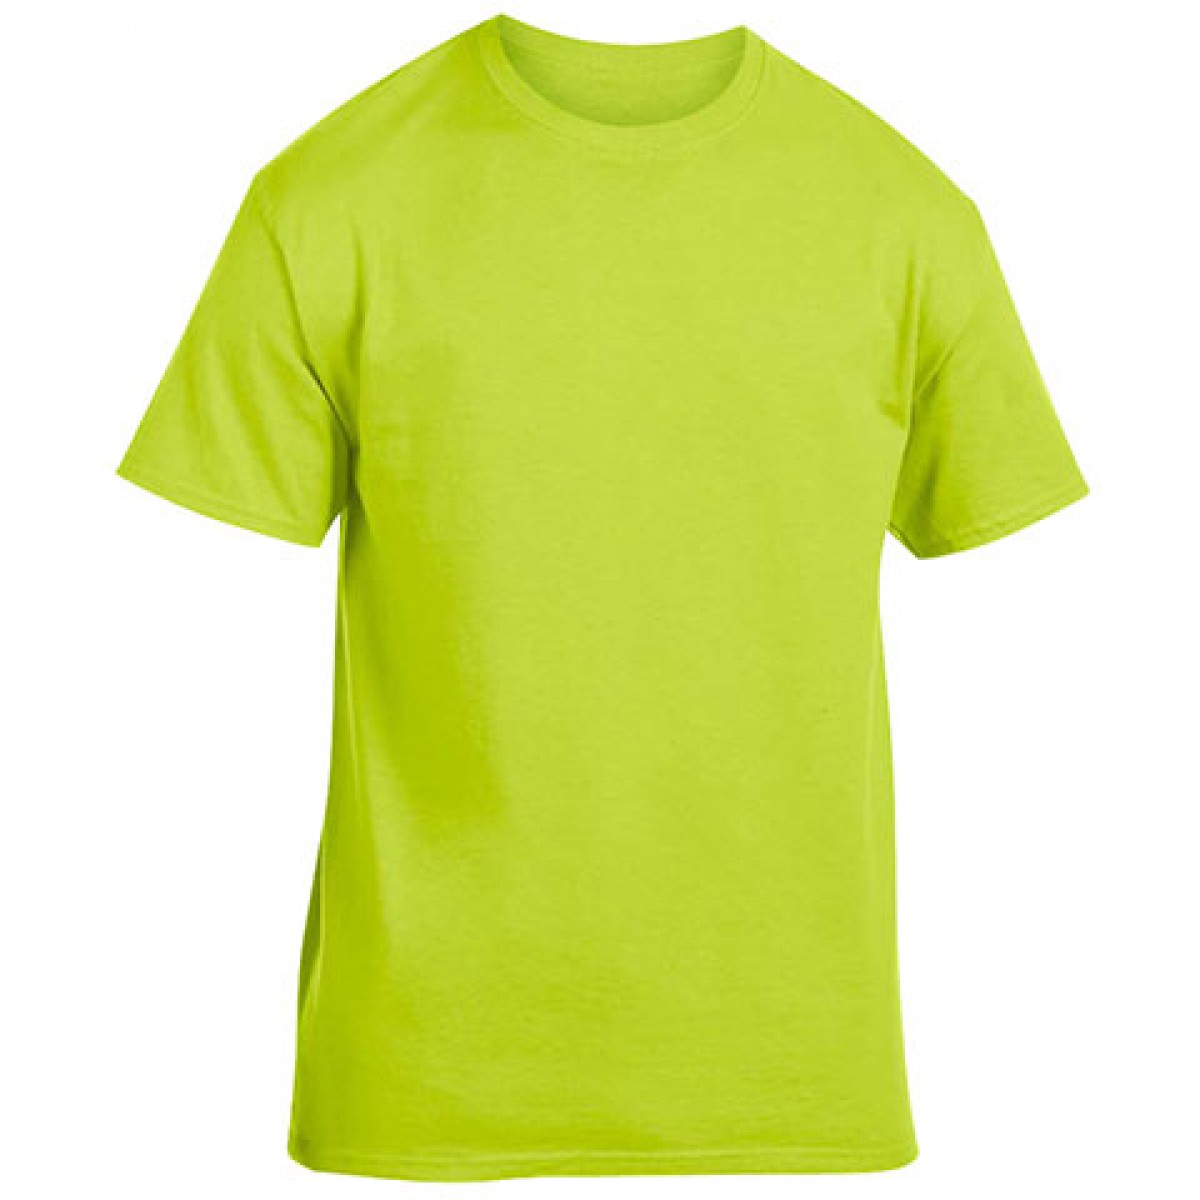 Cotton Short Sleeve T-Shirt-Safety Green-YM